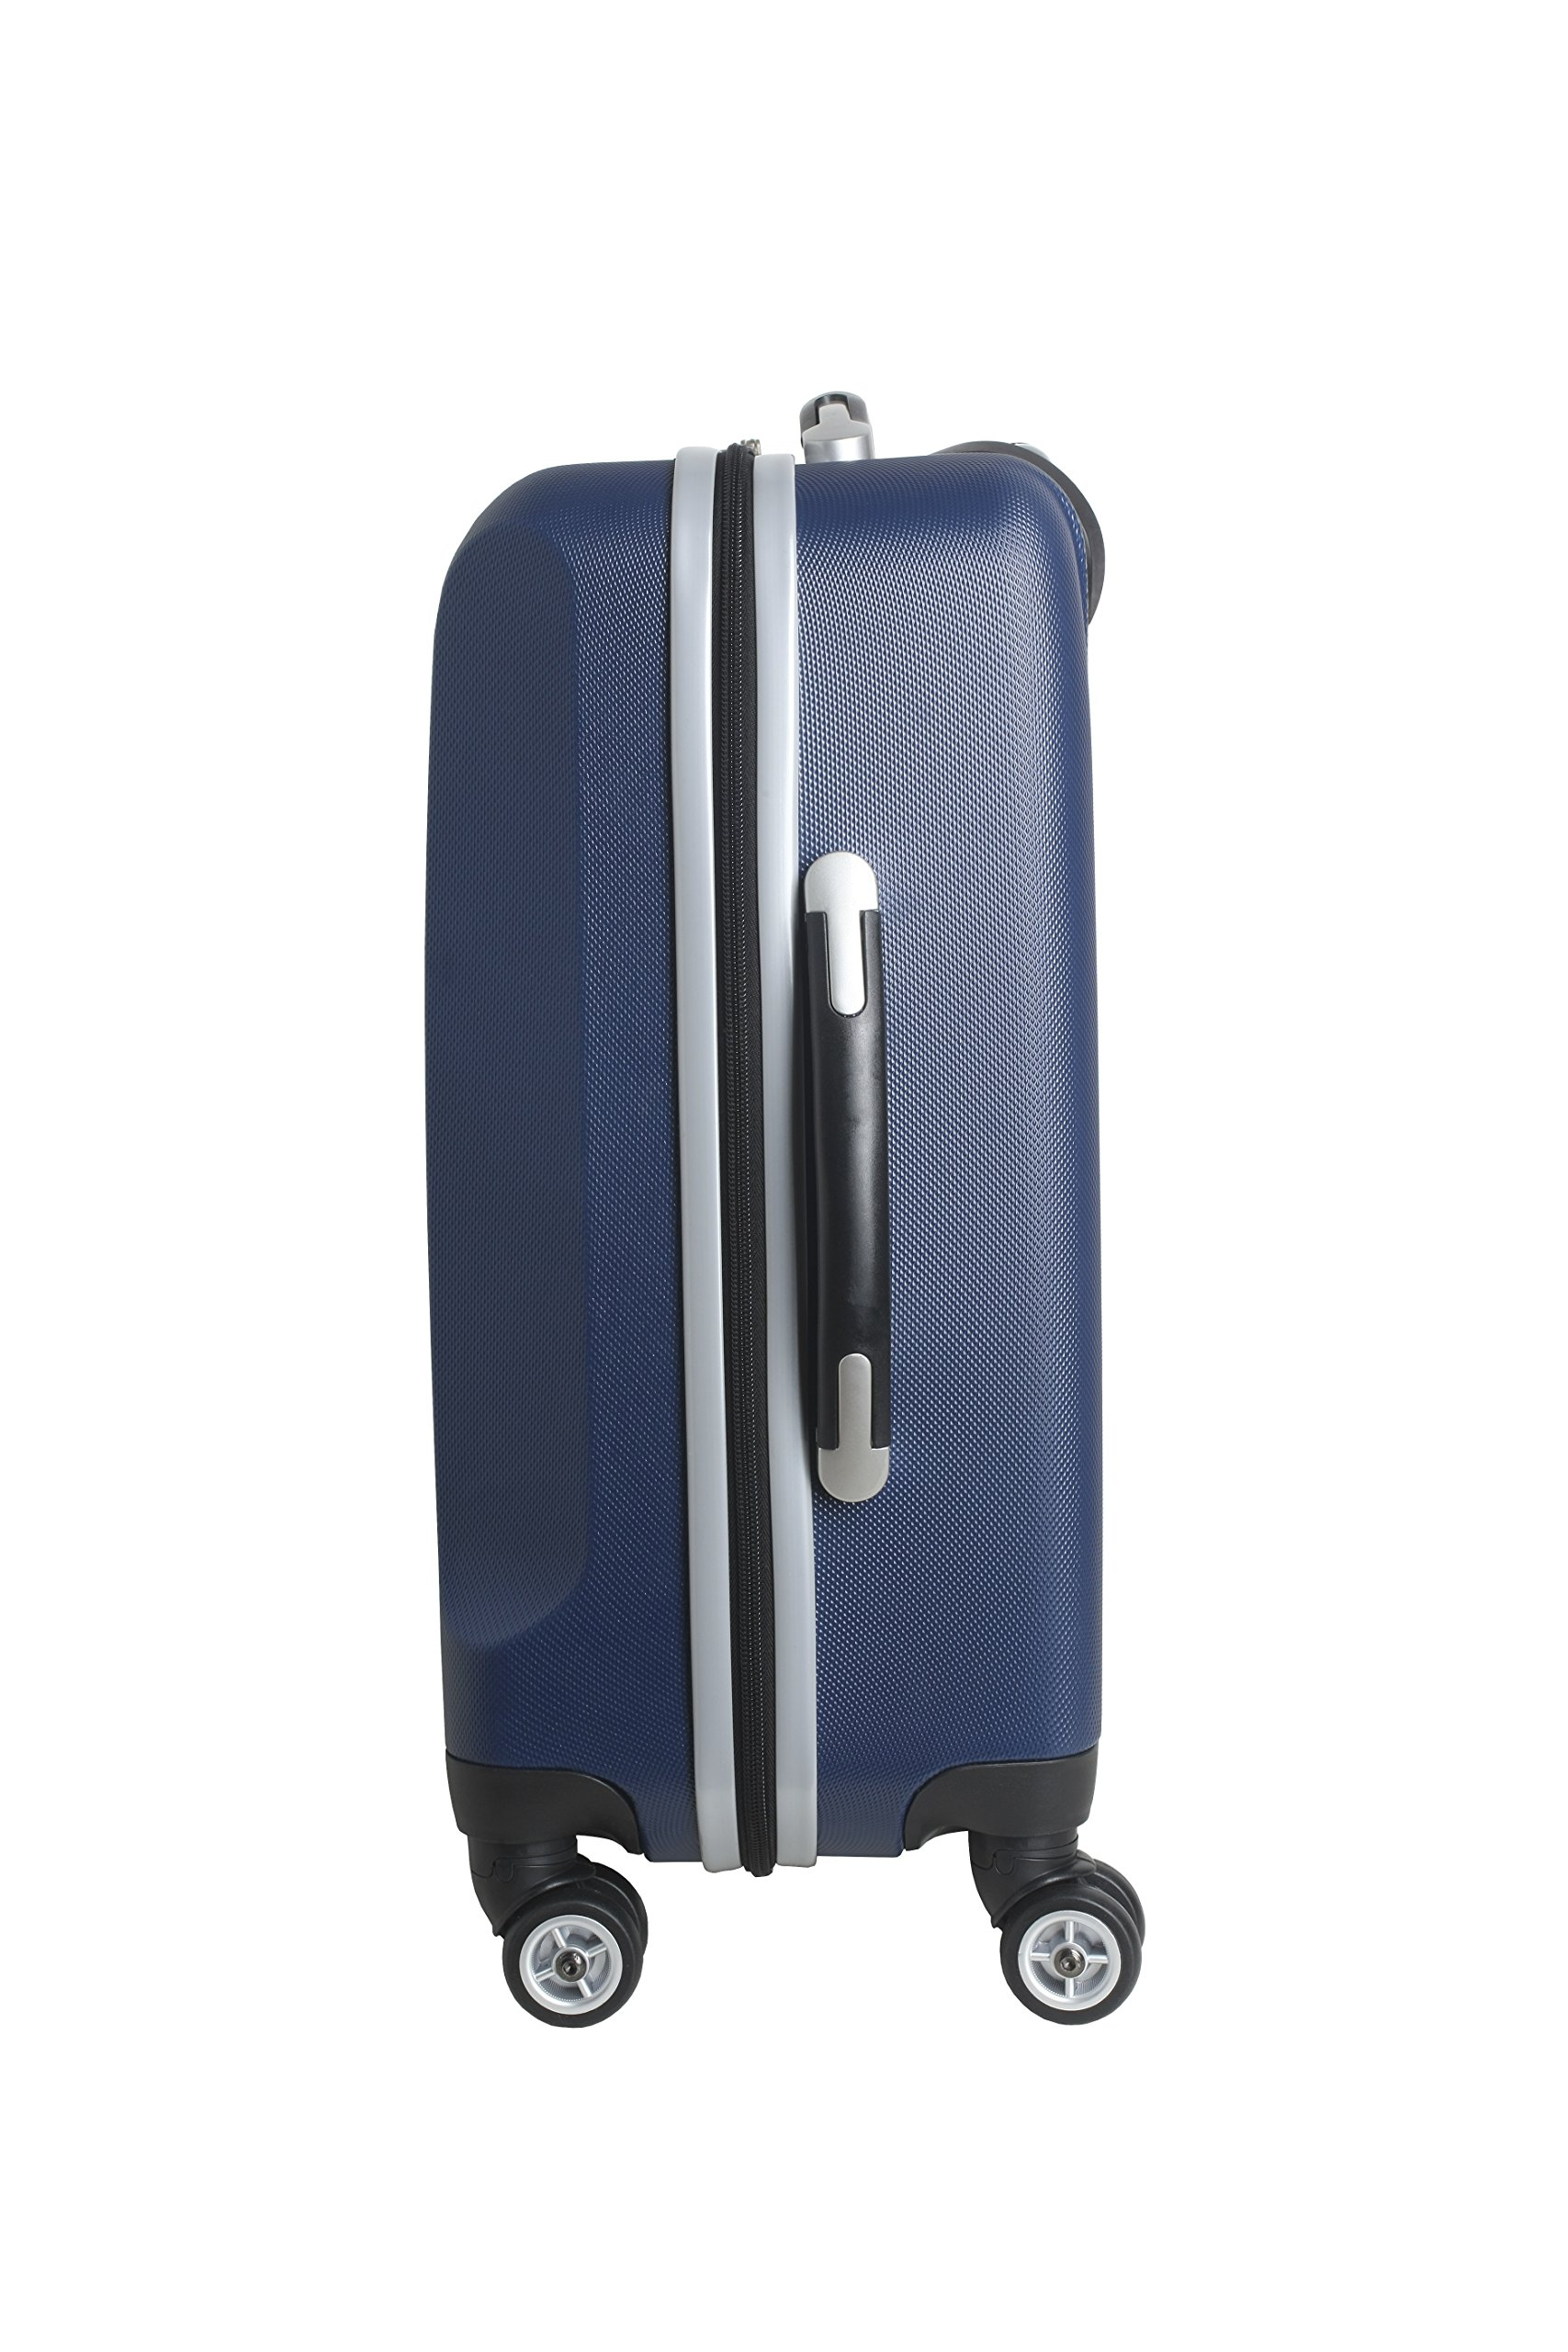 NFL Dallas Cowboys Carry-On Hardcase Luggage Spinner, Navy by Denco (Image #4)